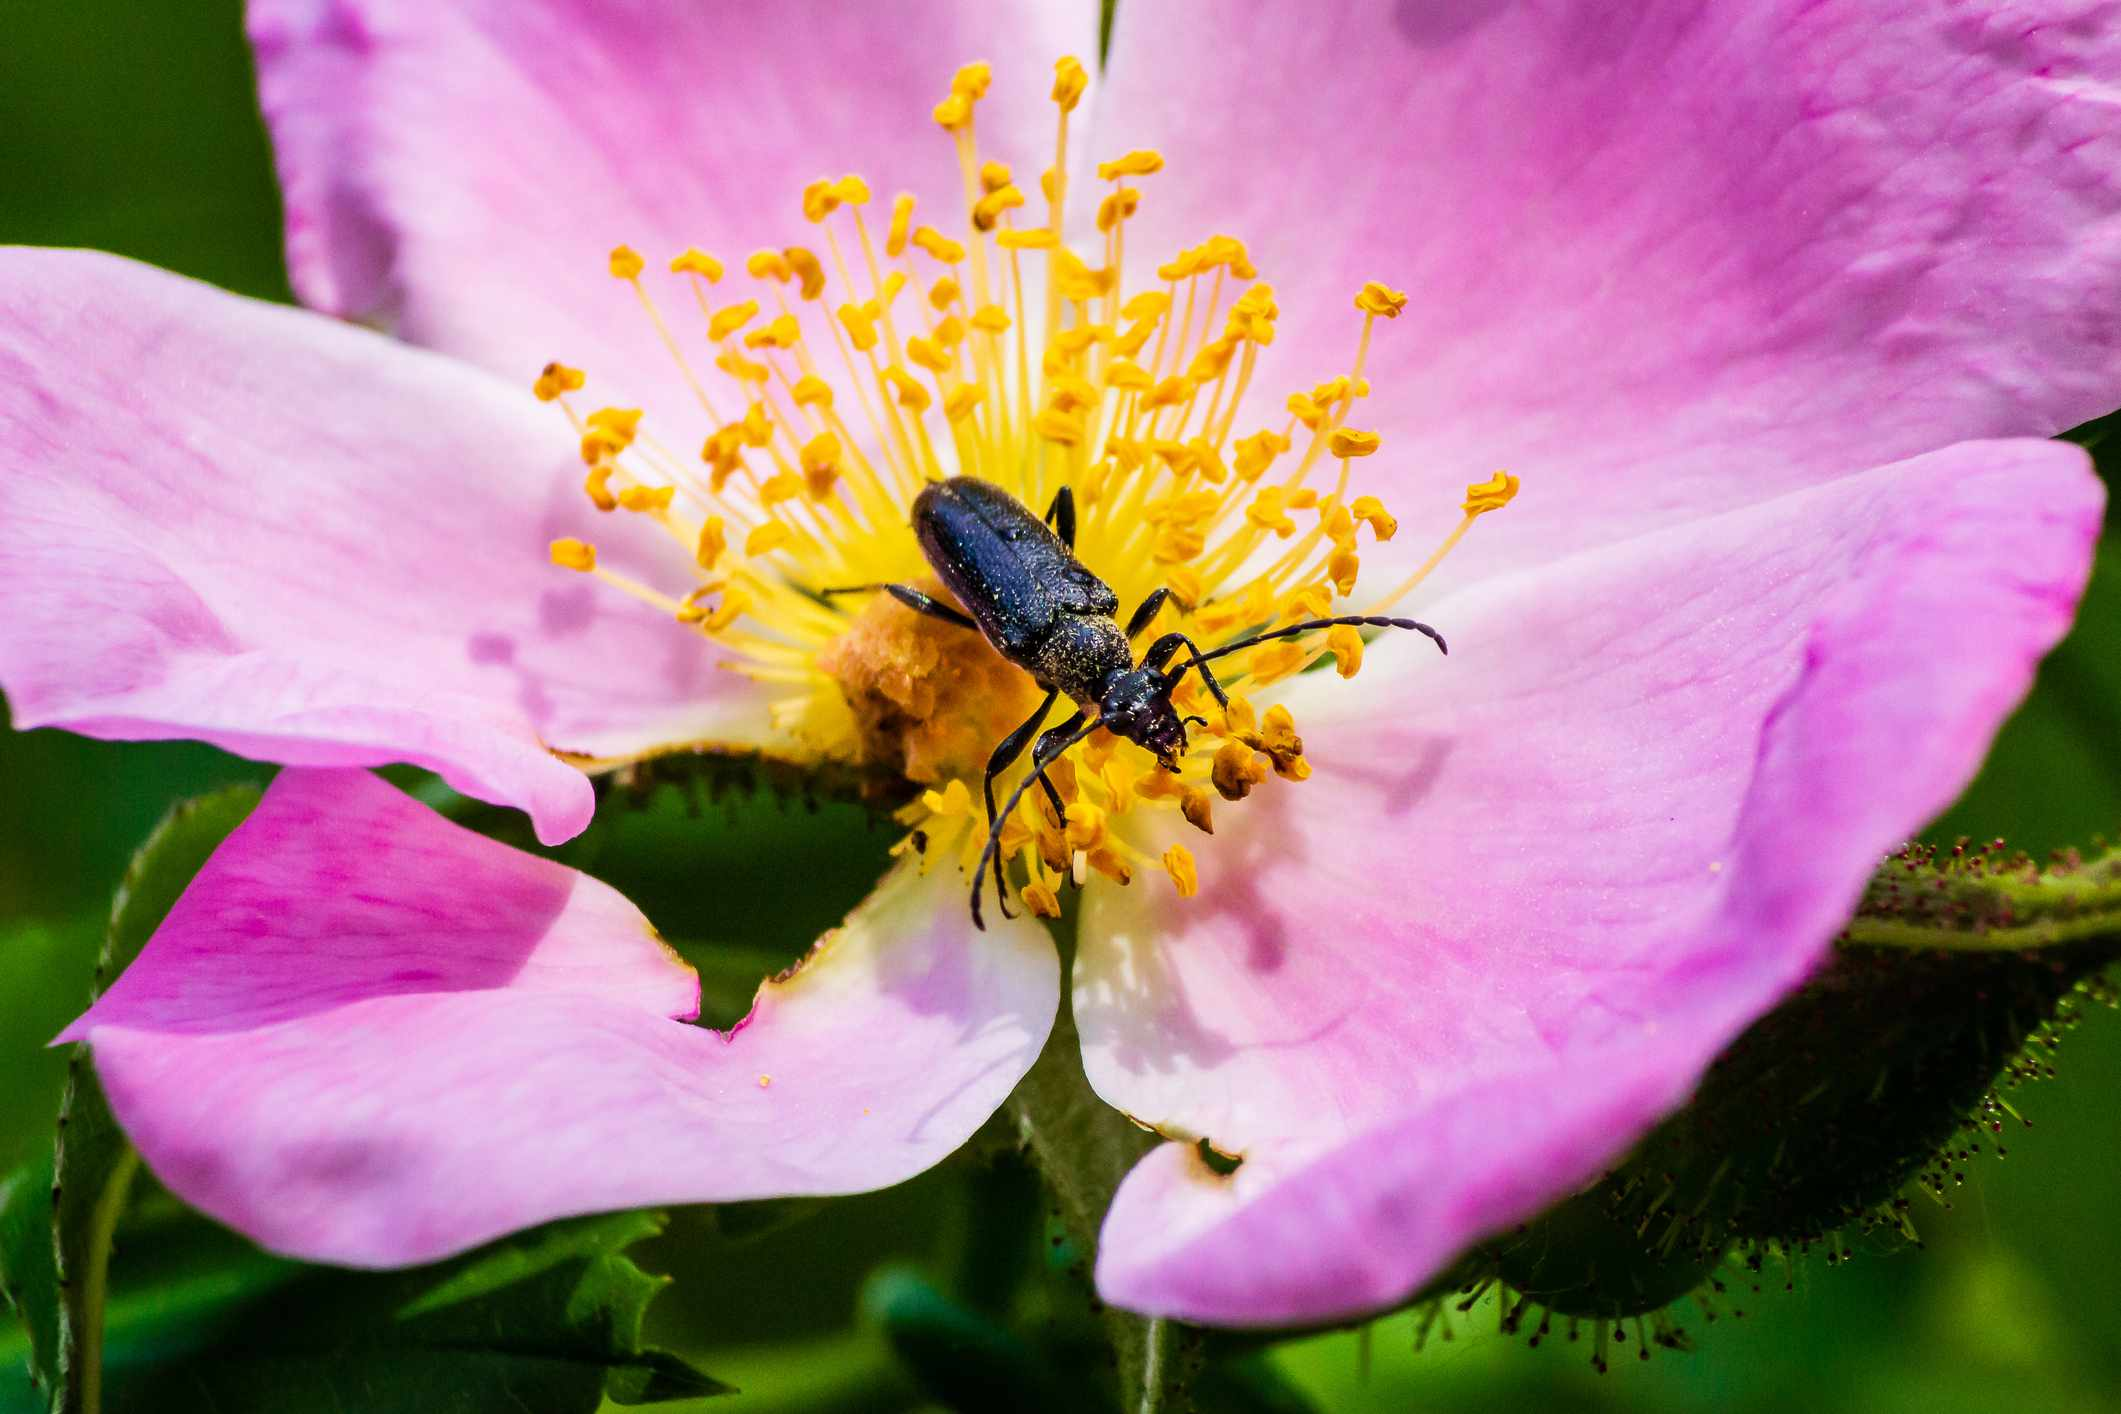 Longhorned beetle on the yellow pistil of a pink flower